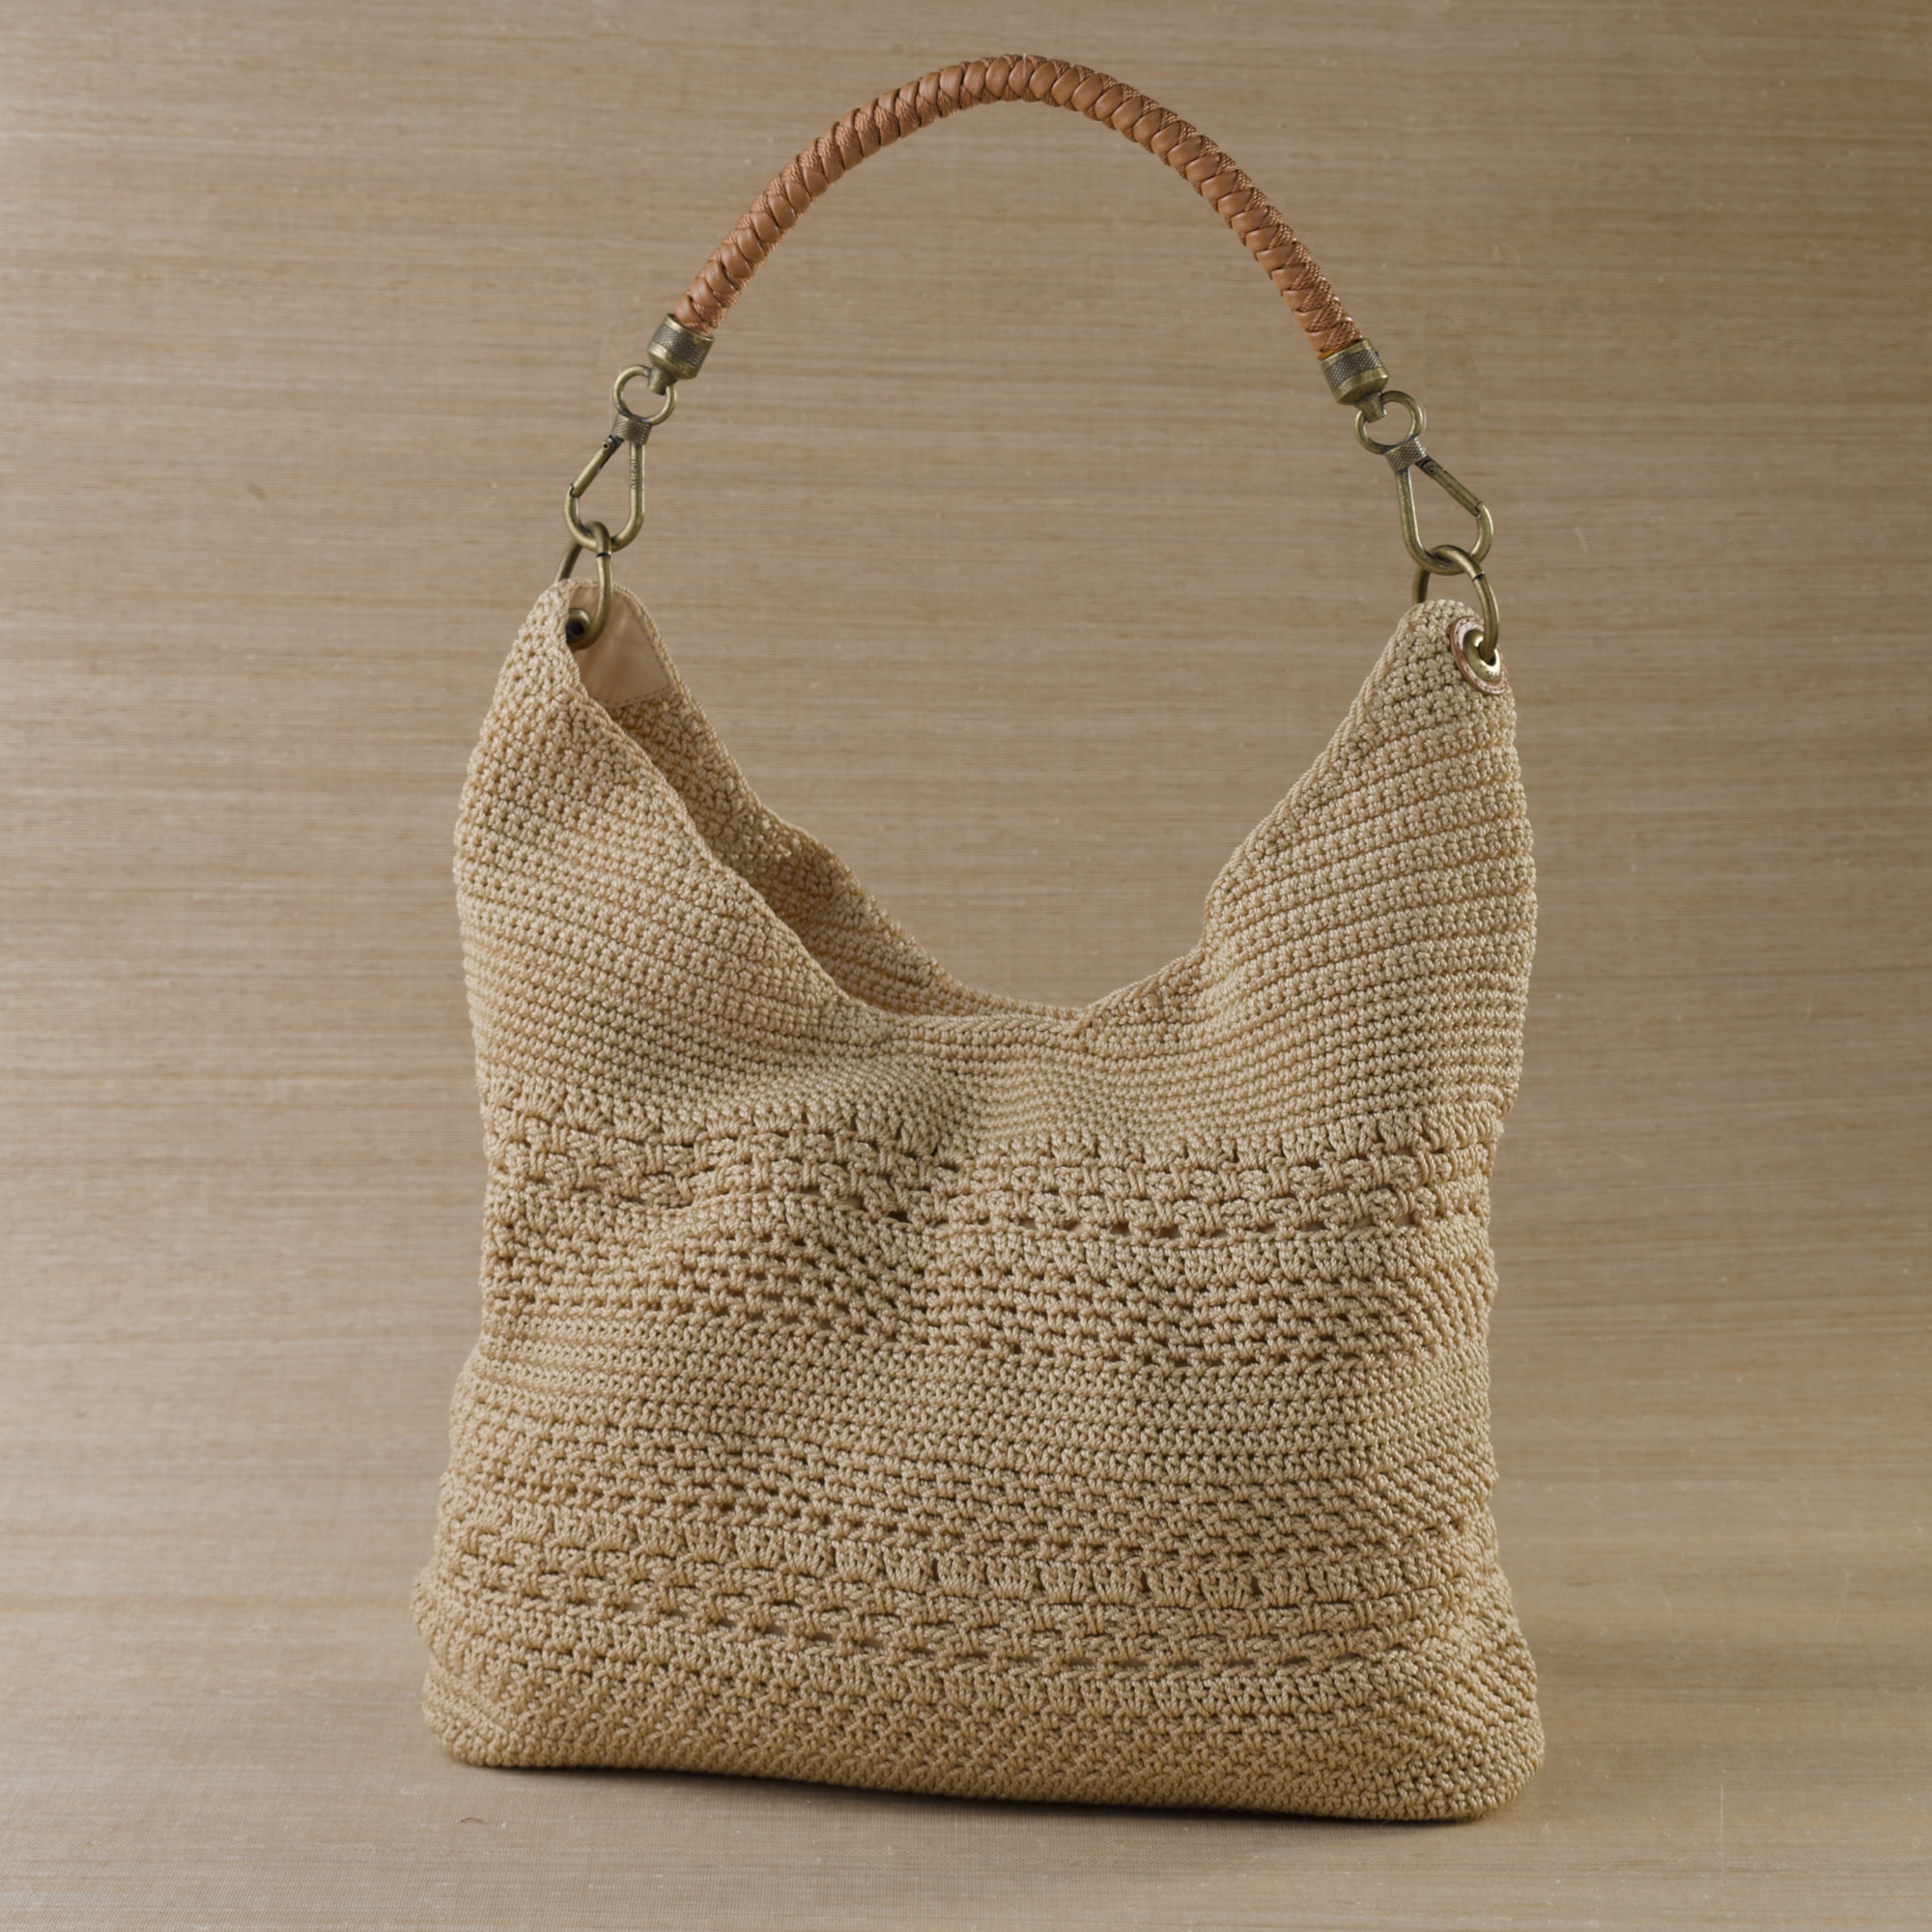 Crochet Pattern For Bucket Bag : Crochet Bucket Bag Gumps